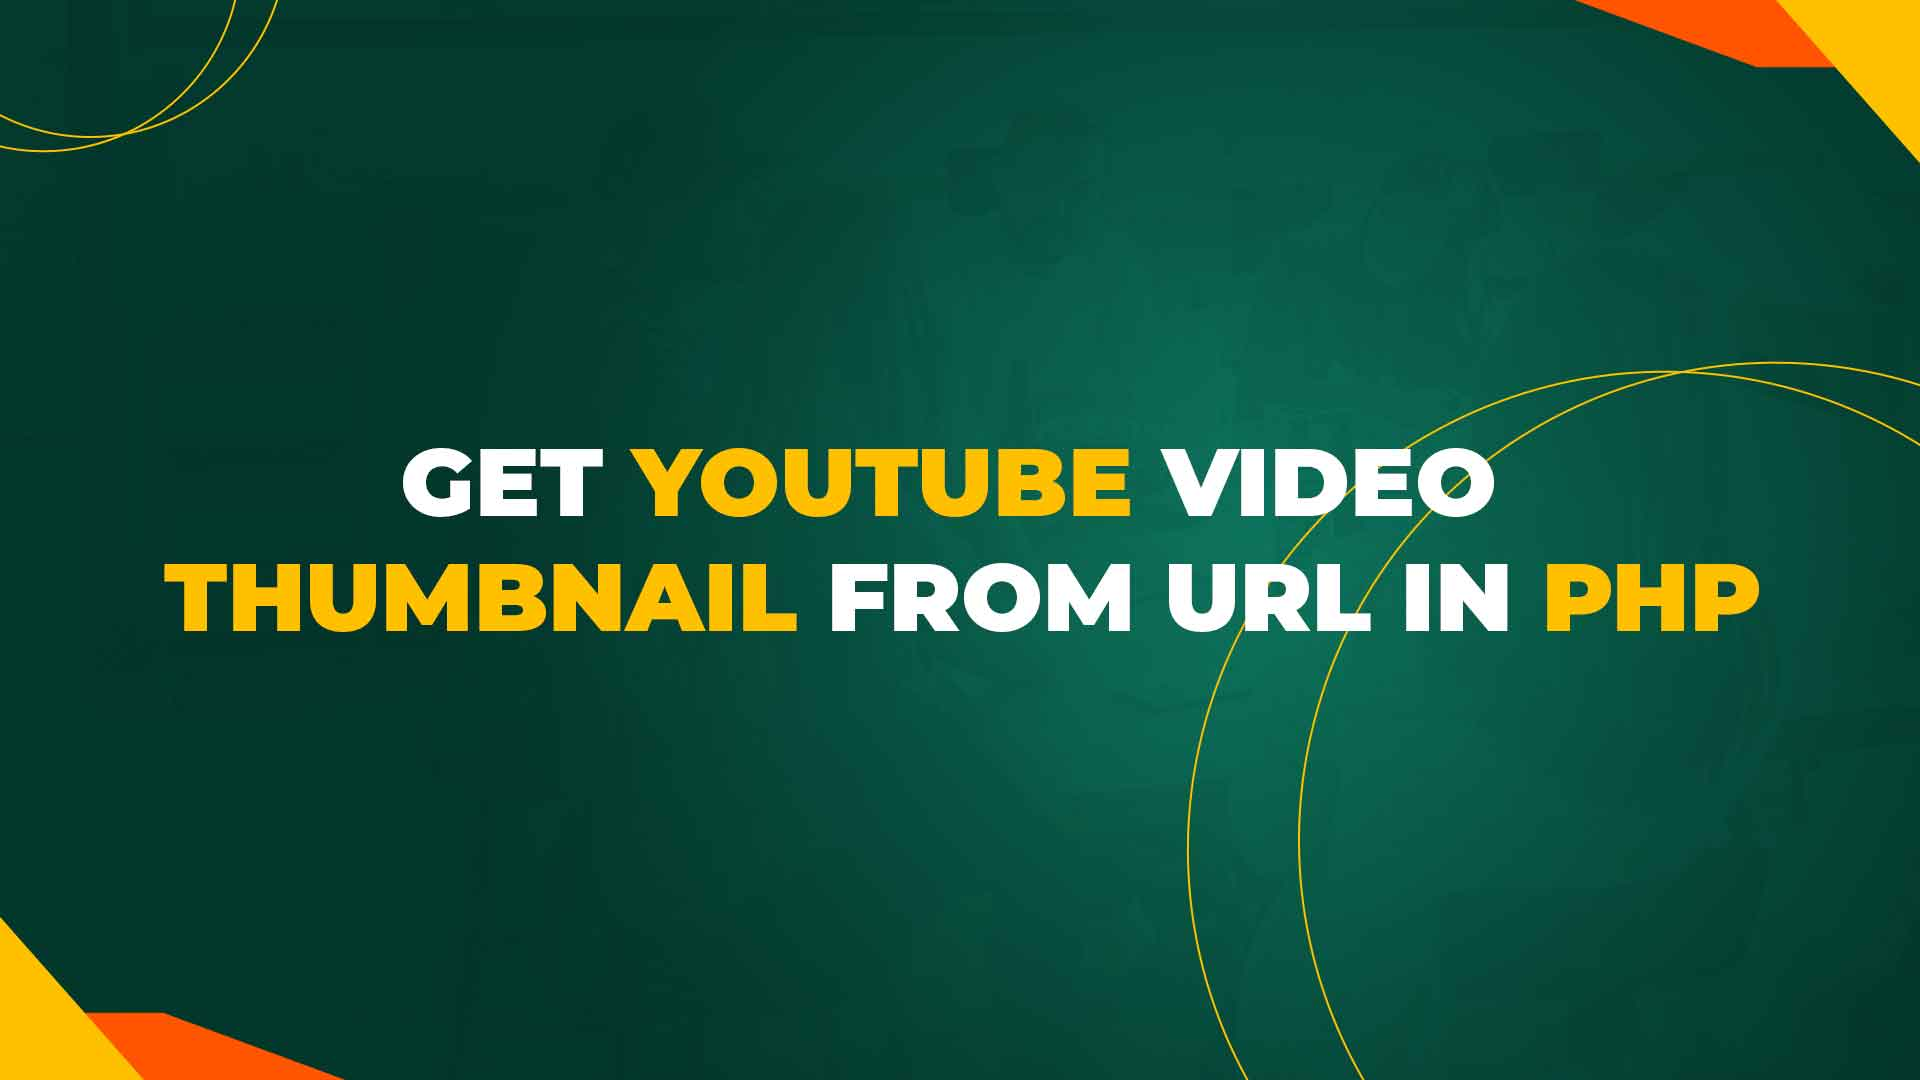 Get YouTube Video Thumbnail from URL in PHP